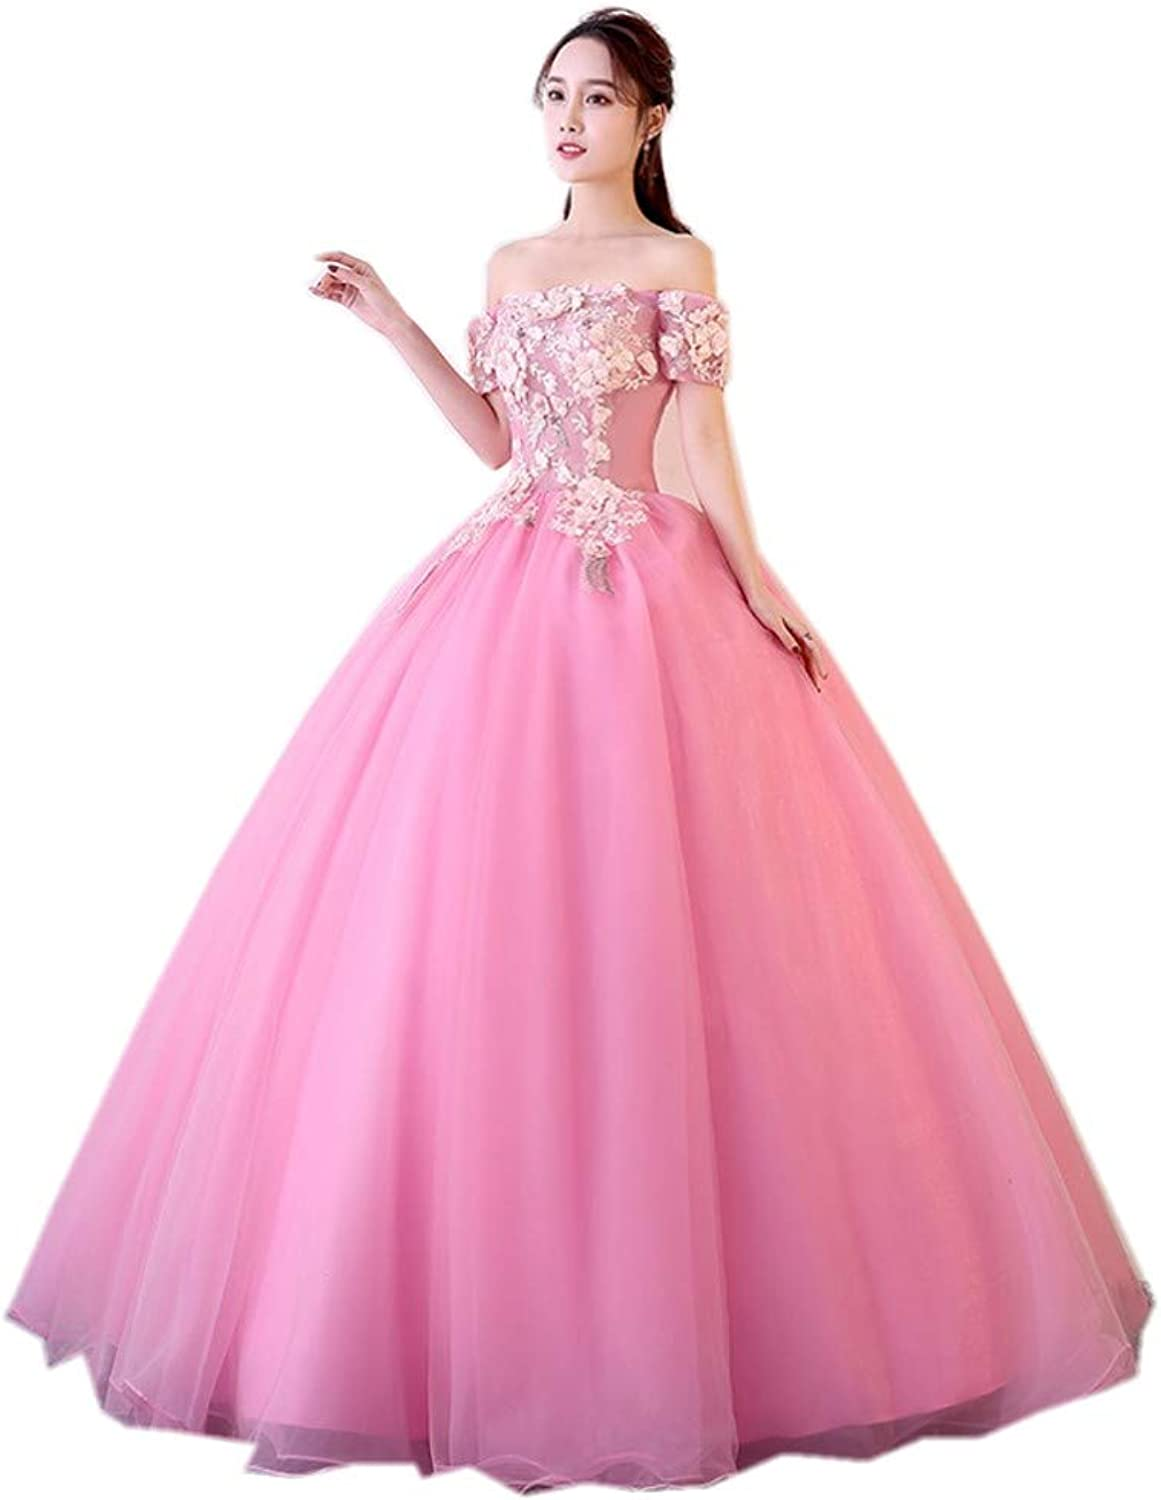 Darcy74Dulles Women's Sweet 16 Quinceanera Dresses Pink Ball Gown Off The Shoulder Lace Long Prom Dresses